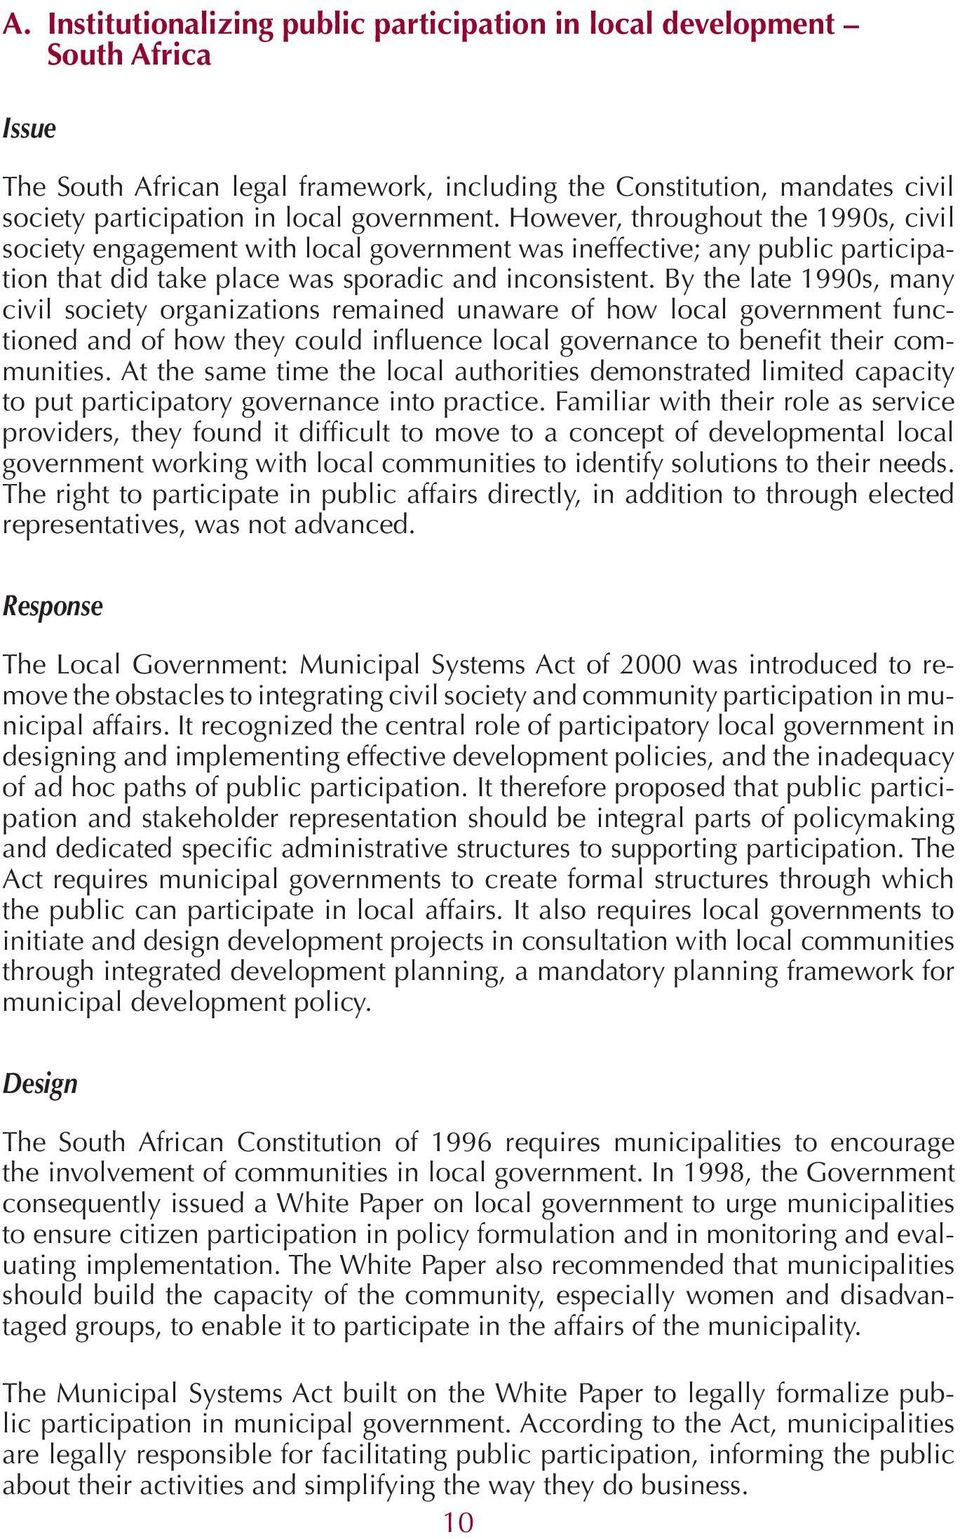 By the late 1990s, many civil society organizations remained unaware of how local government functioned and of how they could influence local governance to benefit their communities.